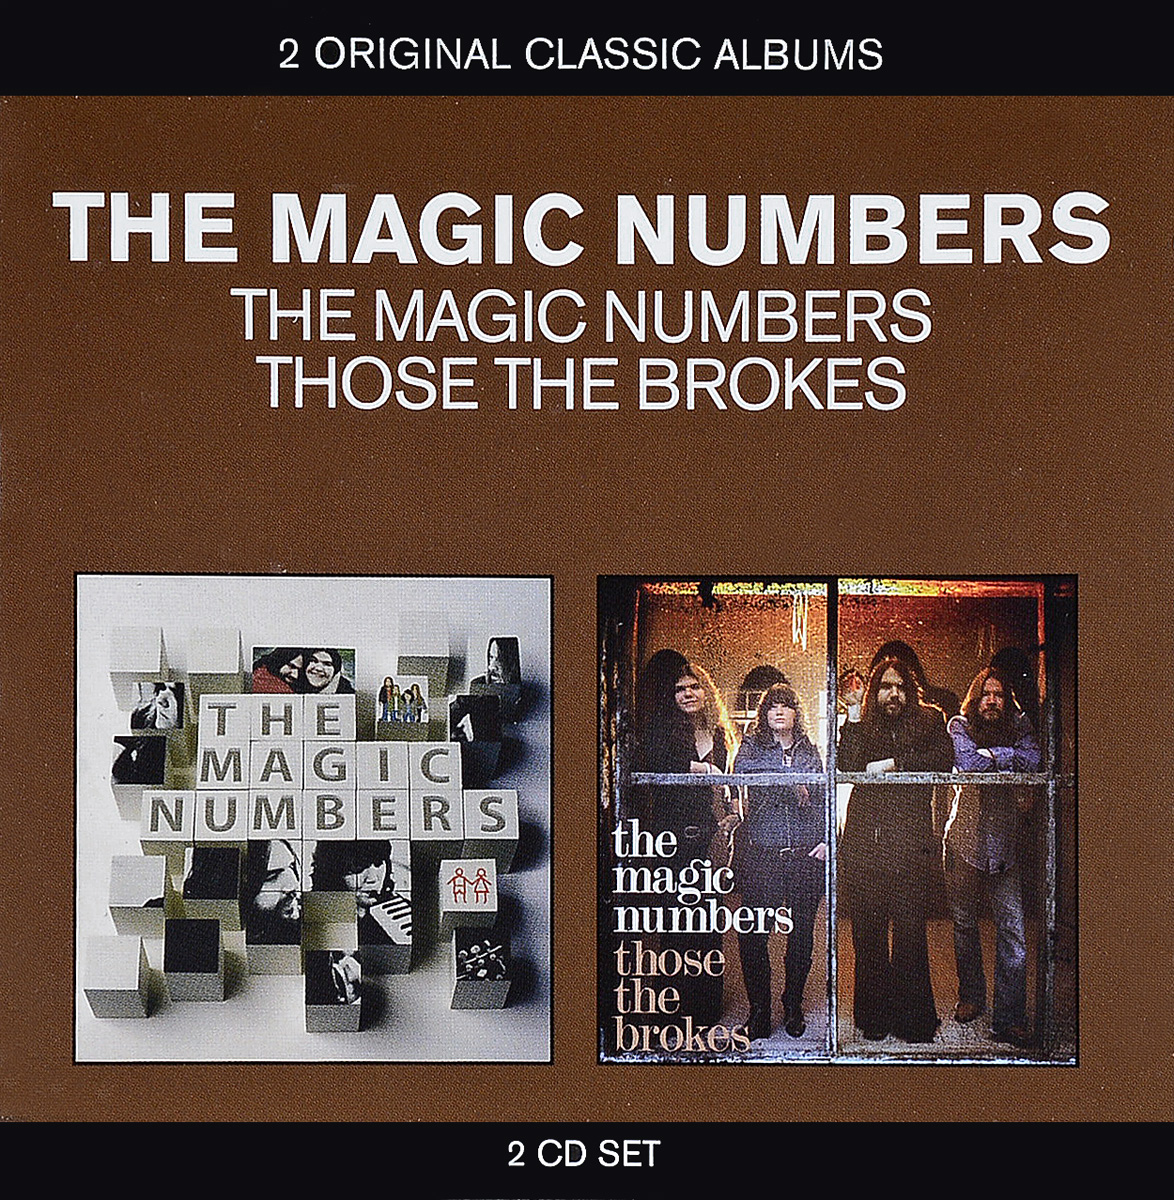 The Magic Numbers The Magic Numbers - 2 Original Classic Albums. The Magic Numbers, Those The Brokes (2CD) the magic paint